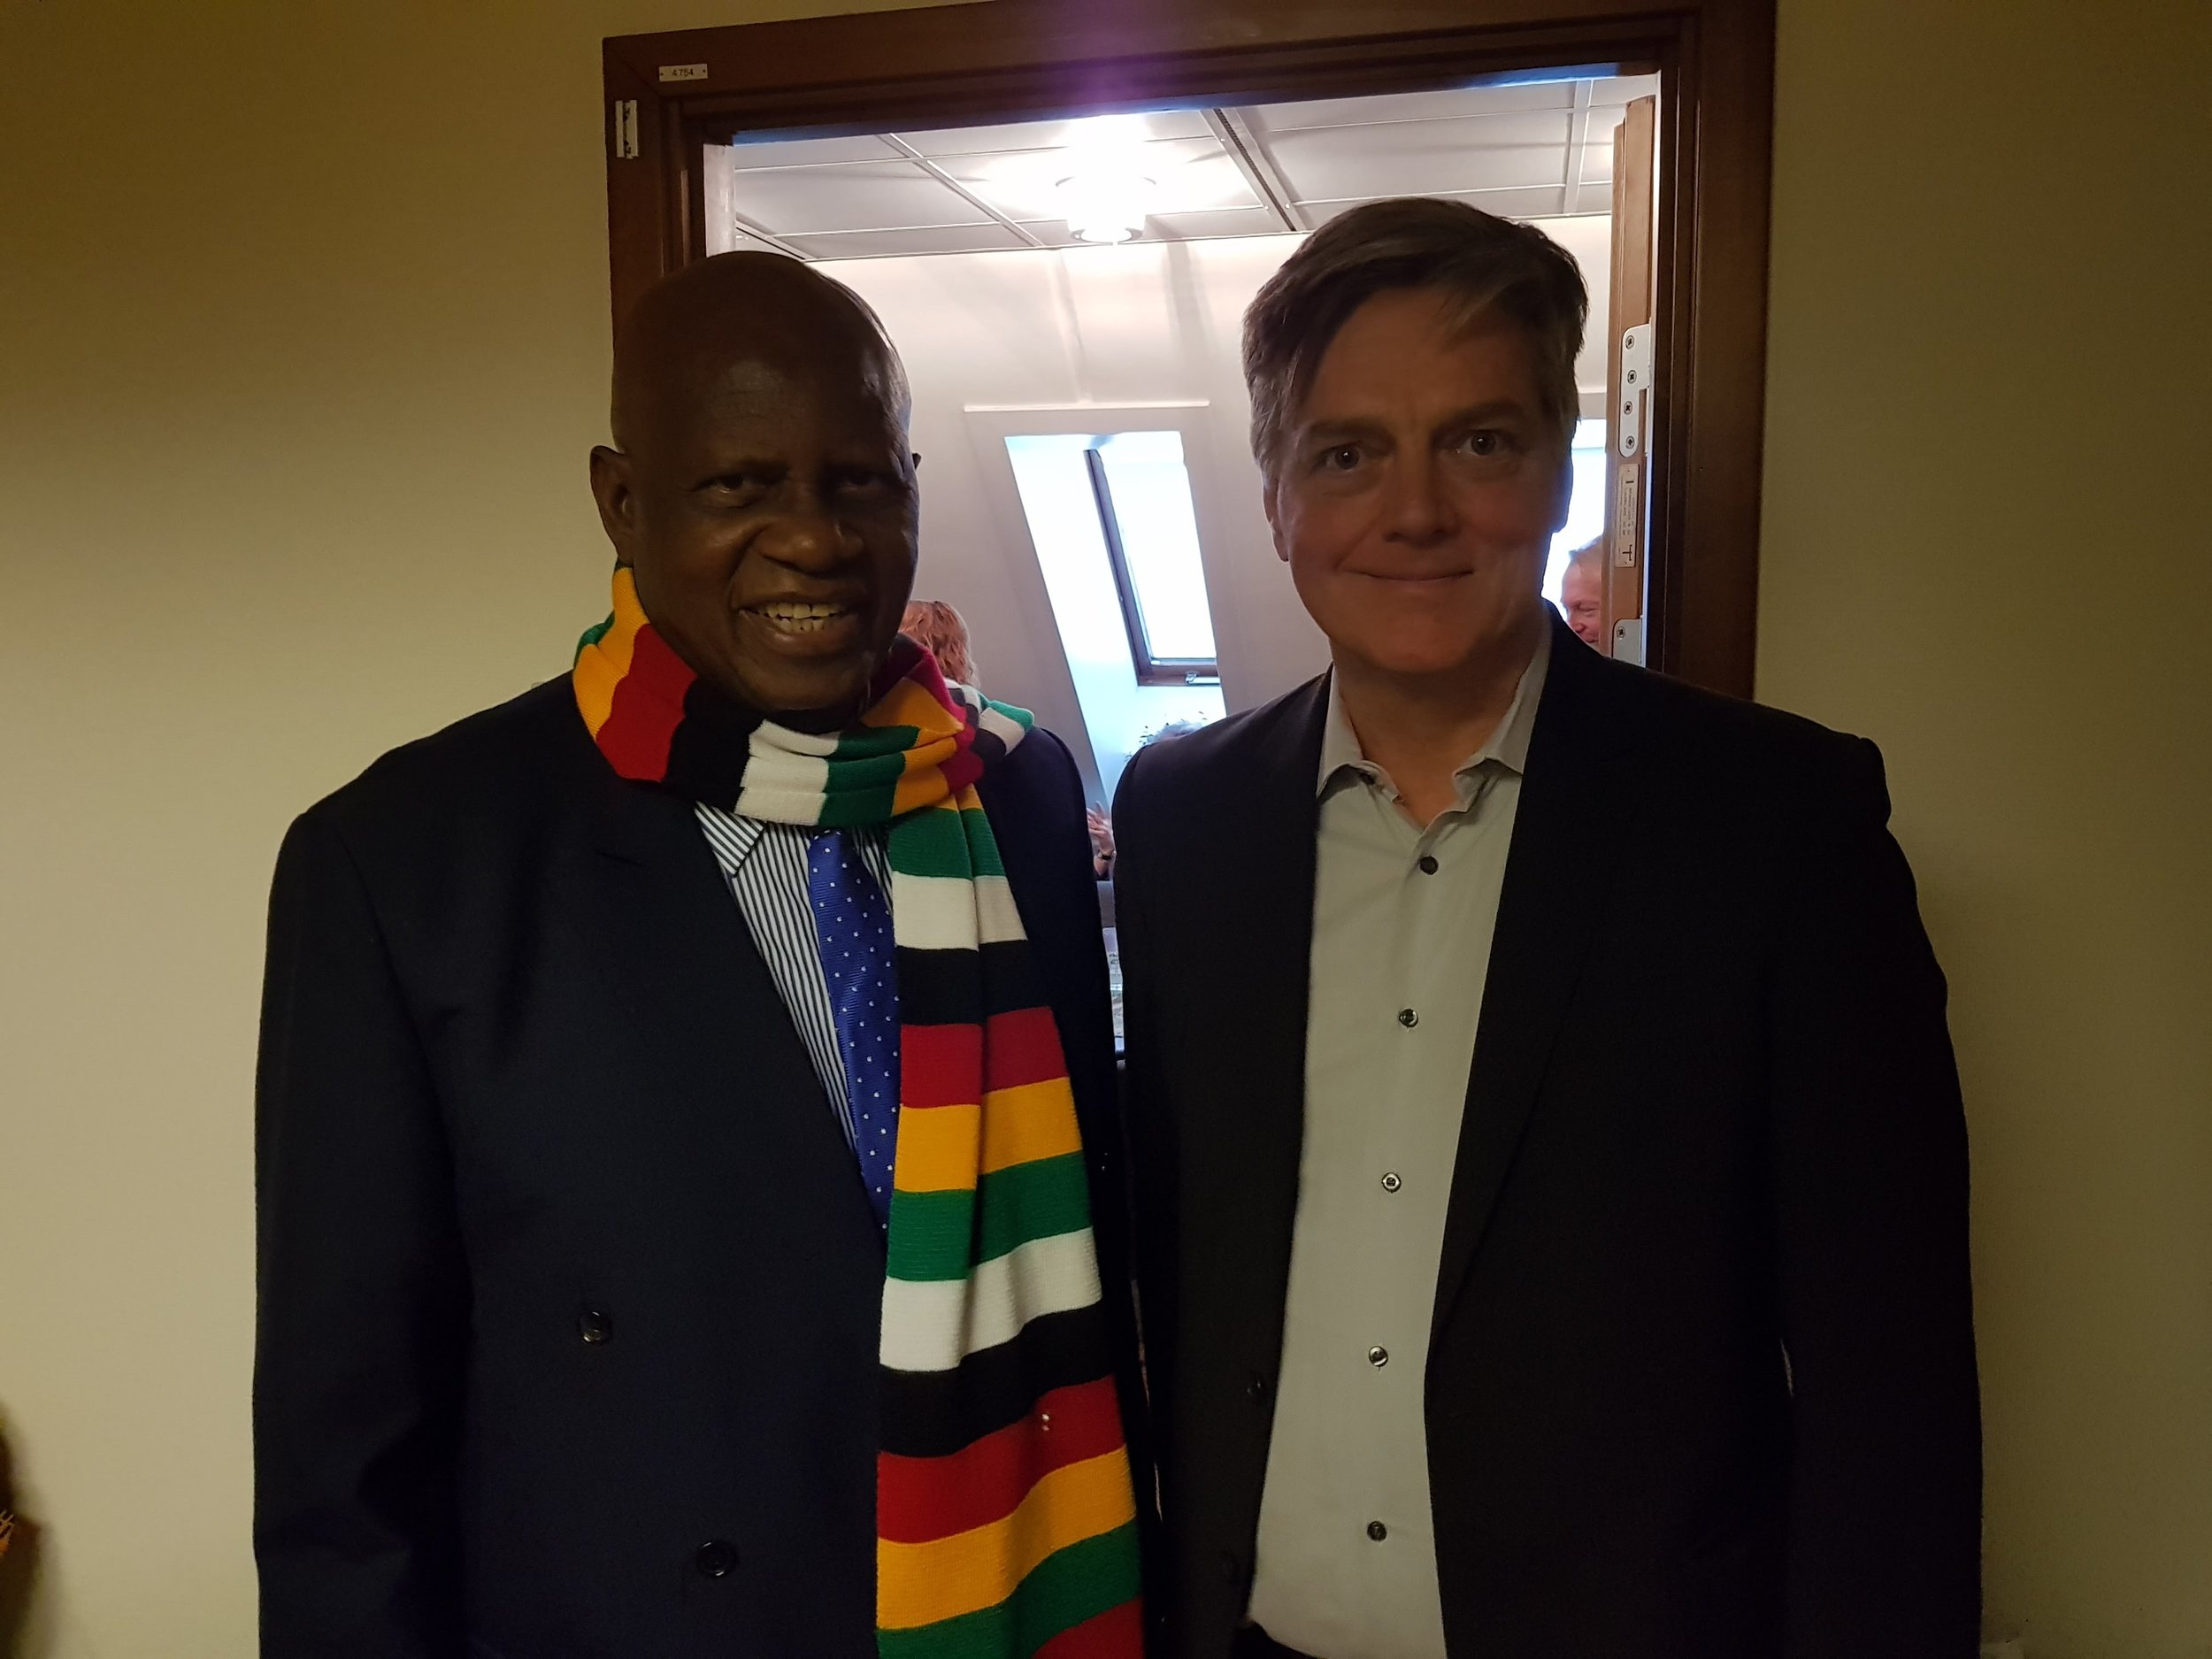 Meeting Honorable Patrick Chinamasa, Minister of Finance and Economic Development of Zimbabwe.  Talking about digitizing the informal sector and digital tax collection. Zimbabwe has a population of 18 million people, most of them in the informal sector.   In 2017, 80% of all money transactions were electronic transactions, while cash just accounted for 20% of transactions. A big challenge, big opportunity!